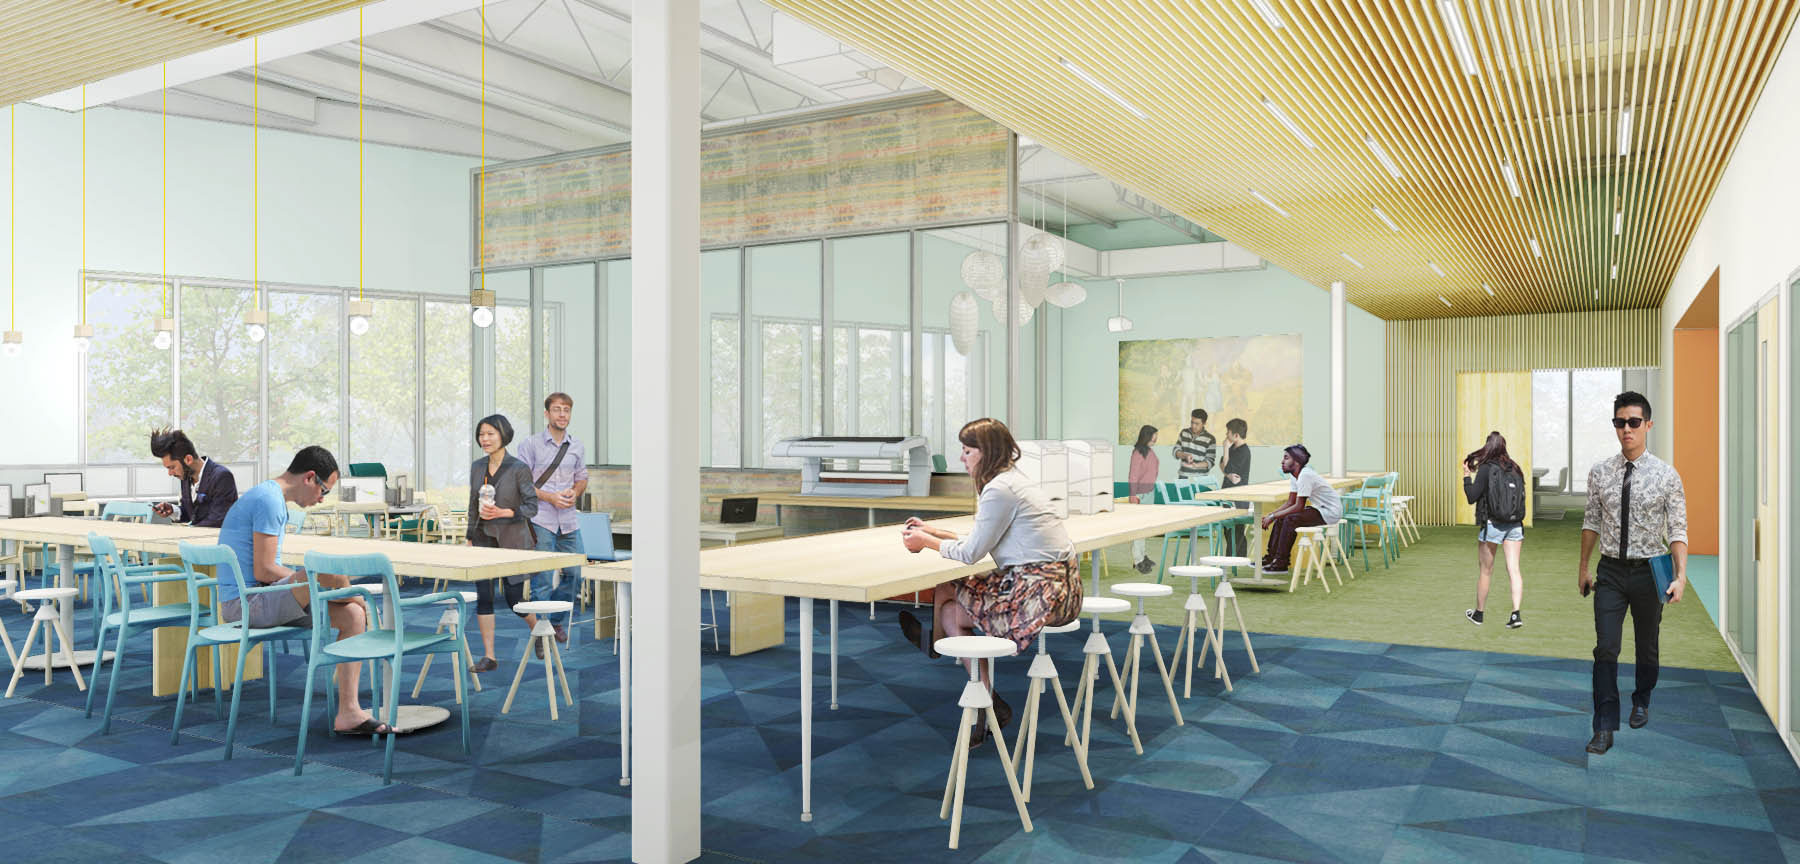 Annapolis-Library_LCA_DD_RENDERING-04_REVISION_05-11